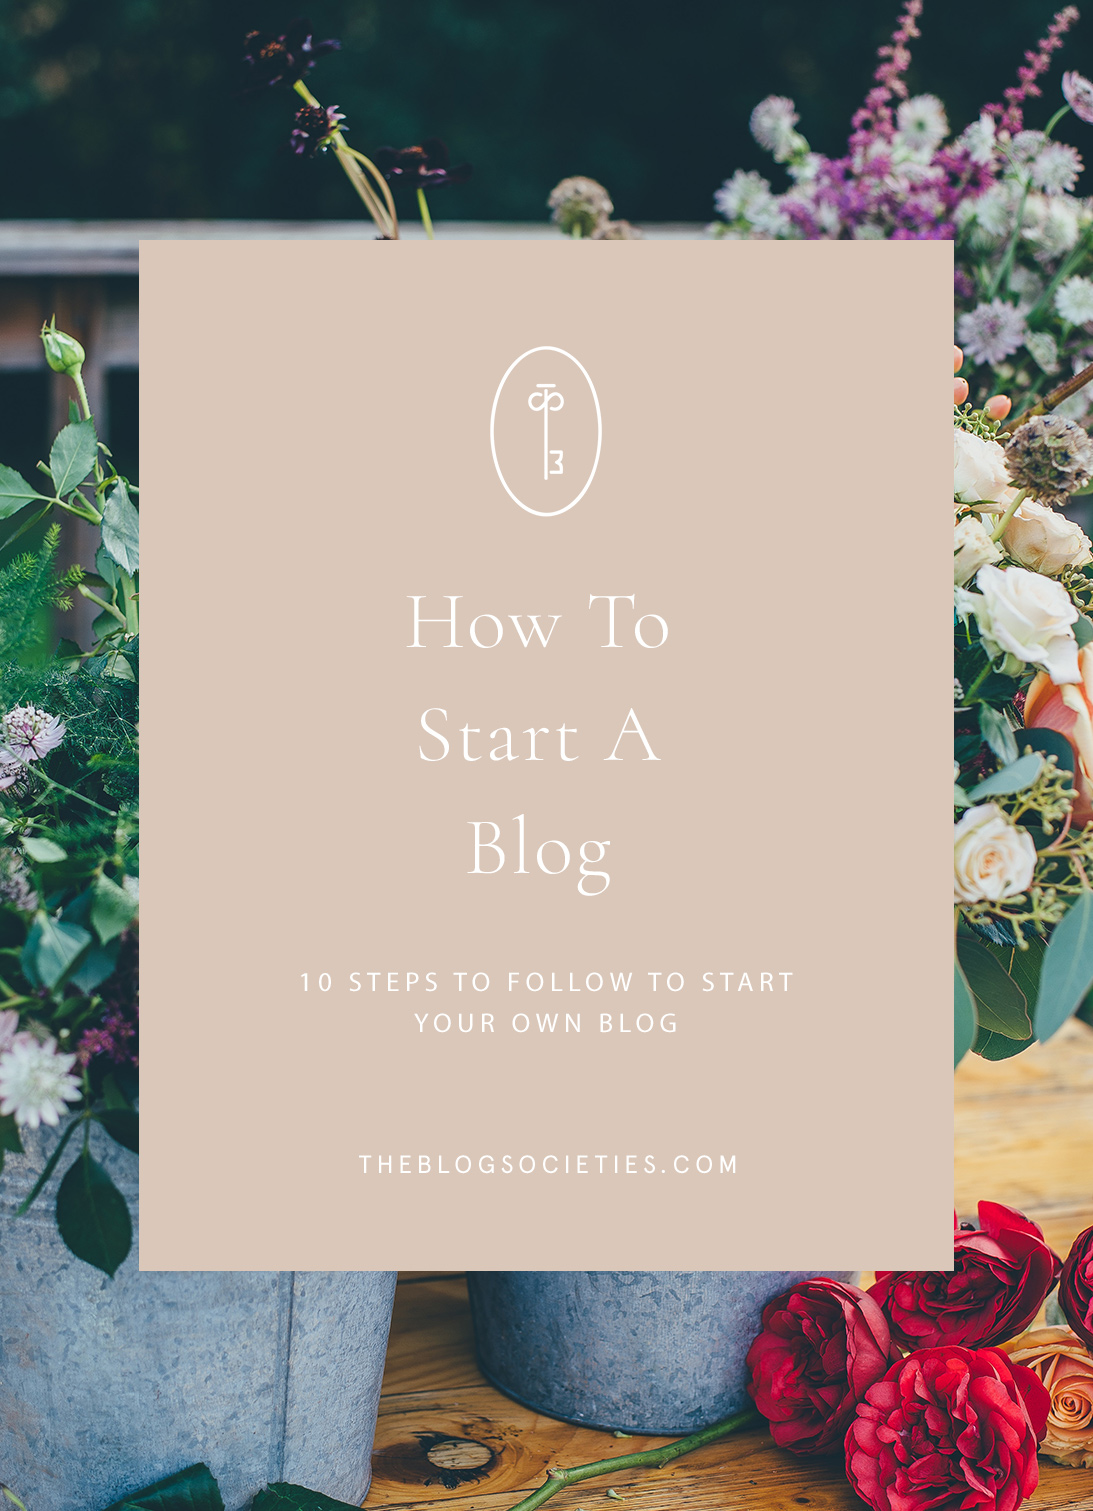 How To Start A Blog In 10 Easy Steps - The Blog Societies